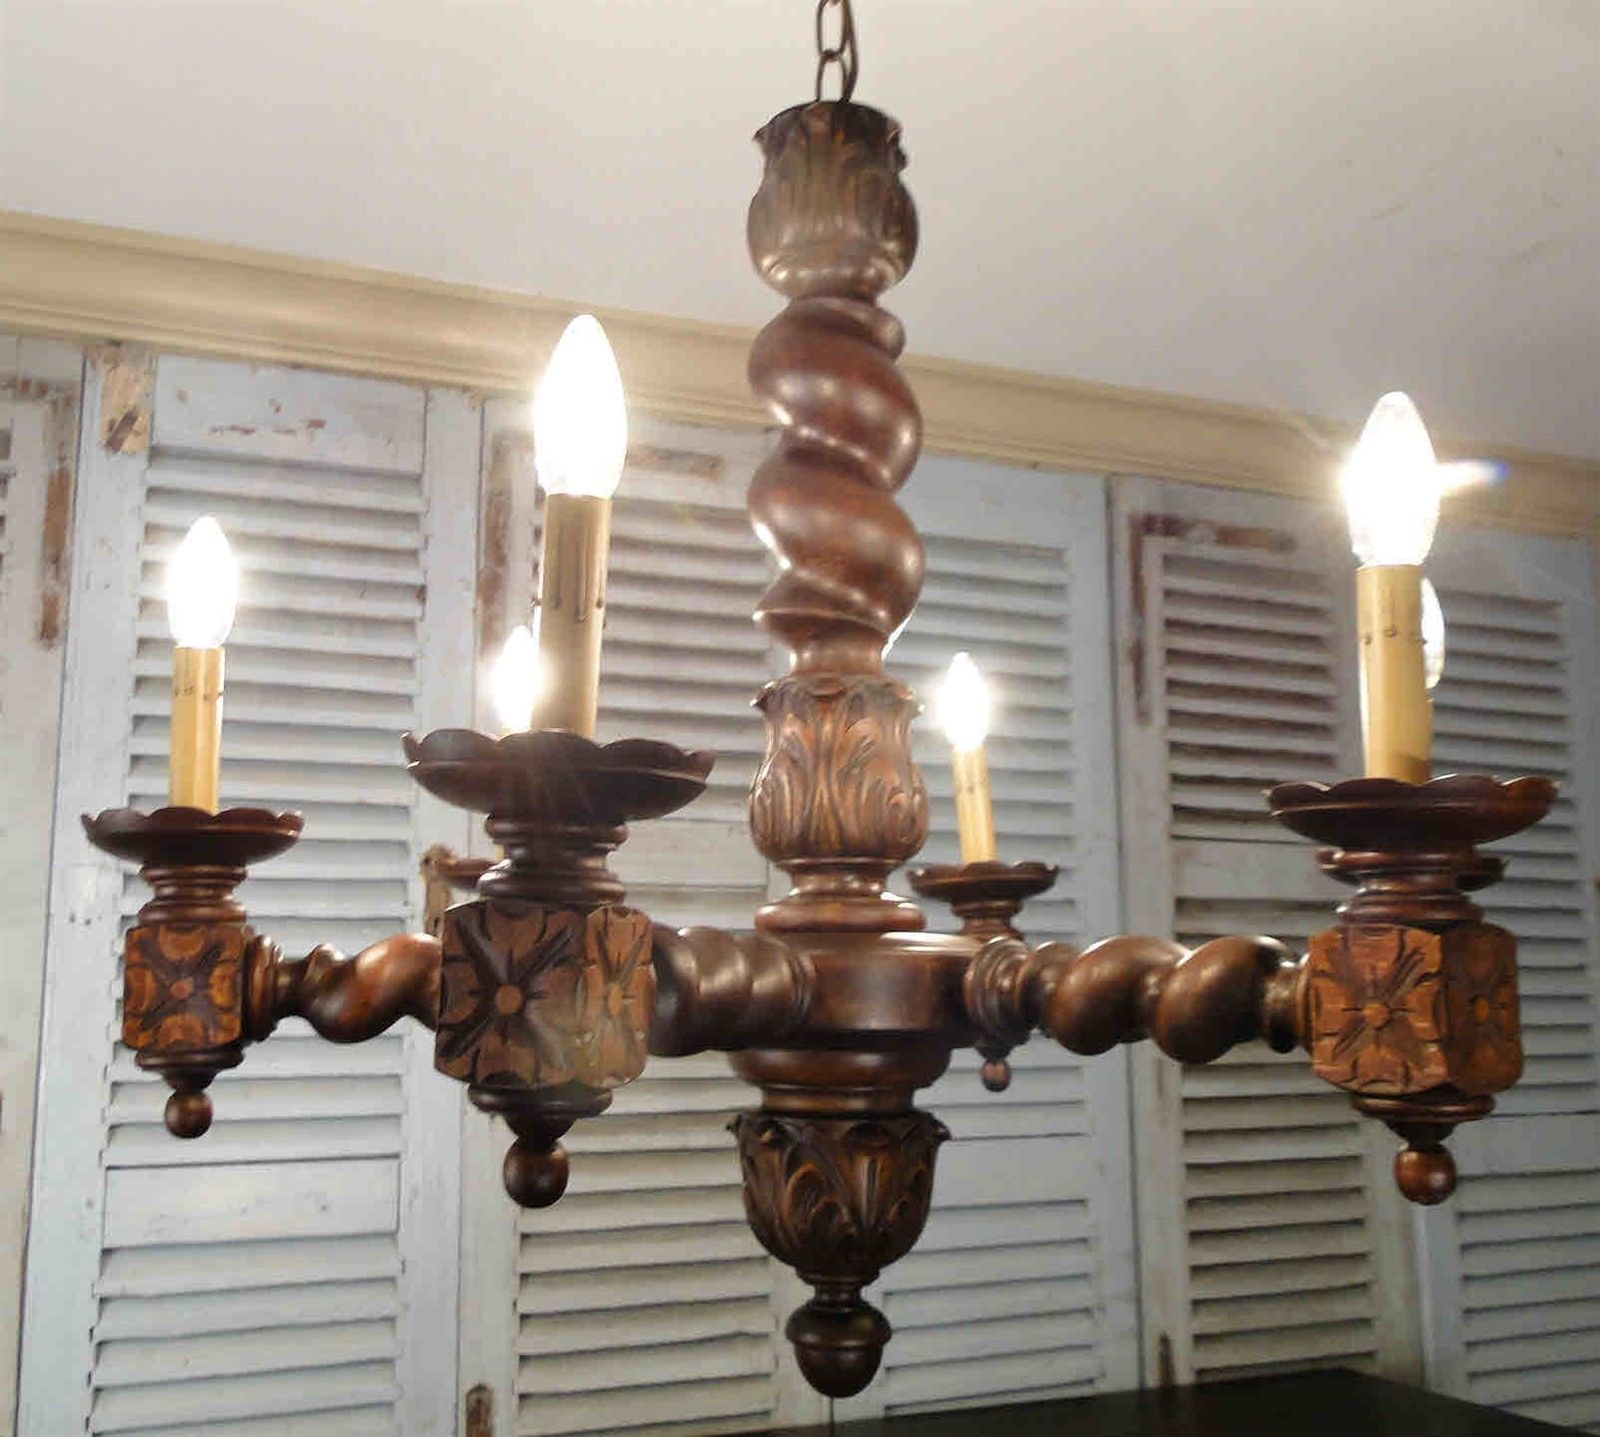 Antique French Barley Twist Large Chandelier Ceiling Light Rewired for USA